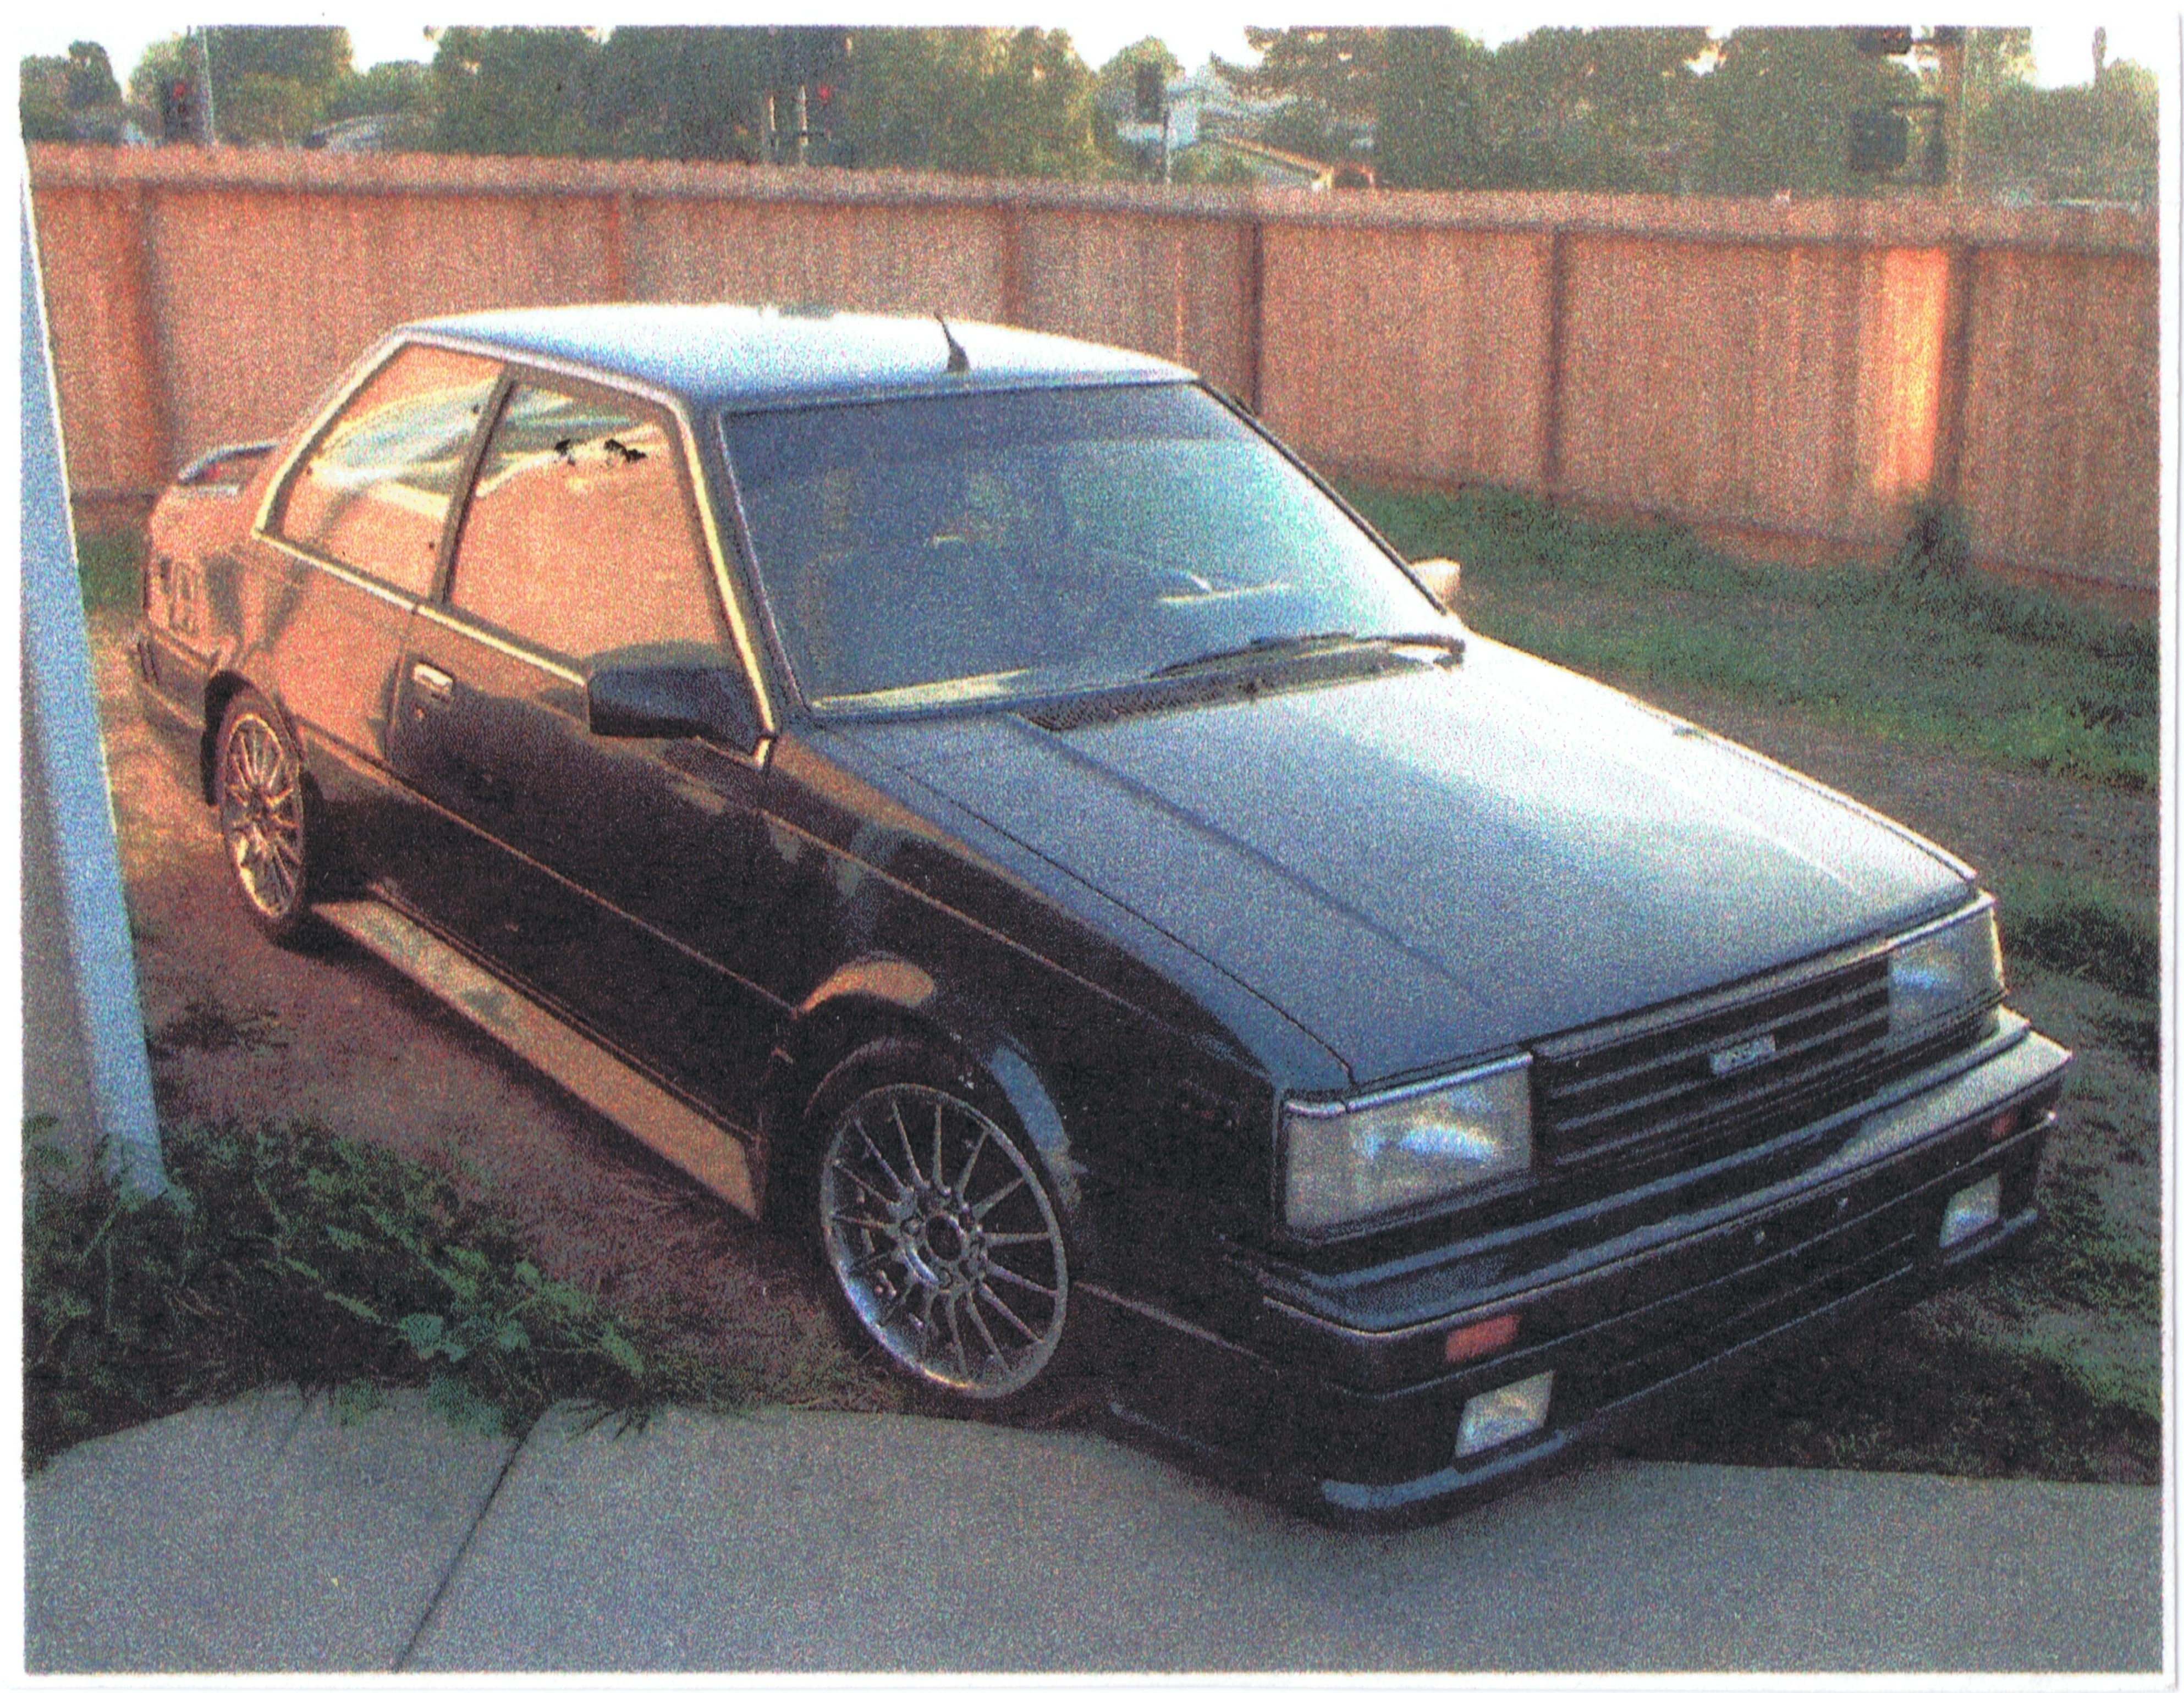 Gsd93 1985 Nissan Sentra Specs, Photos, Modification Info at ...